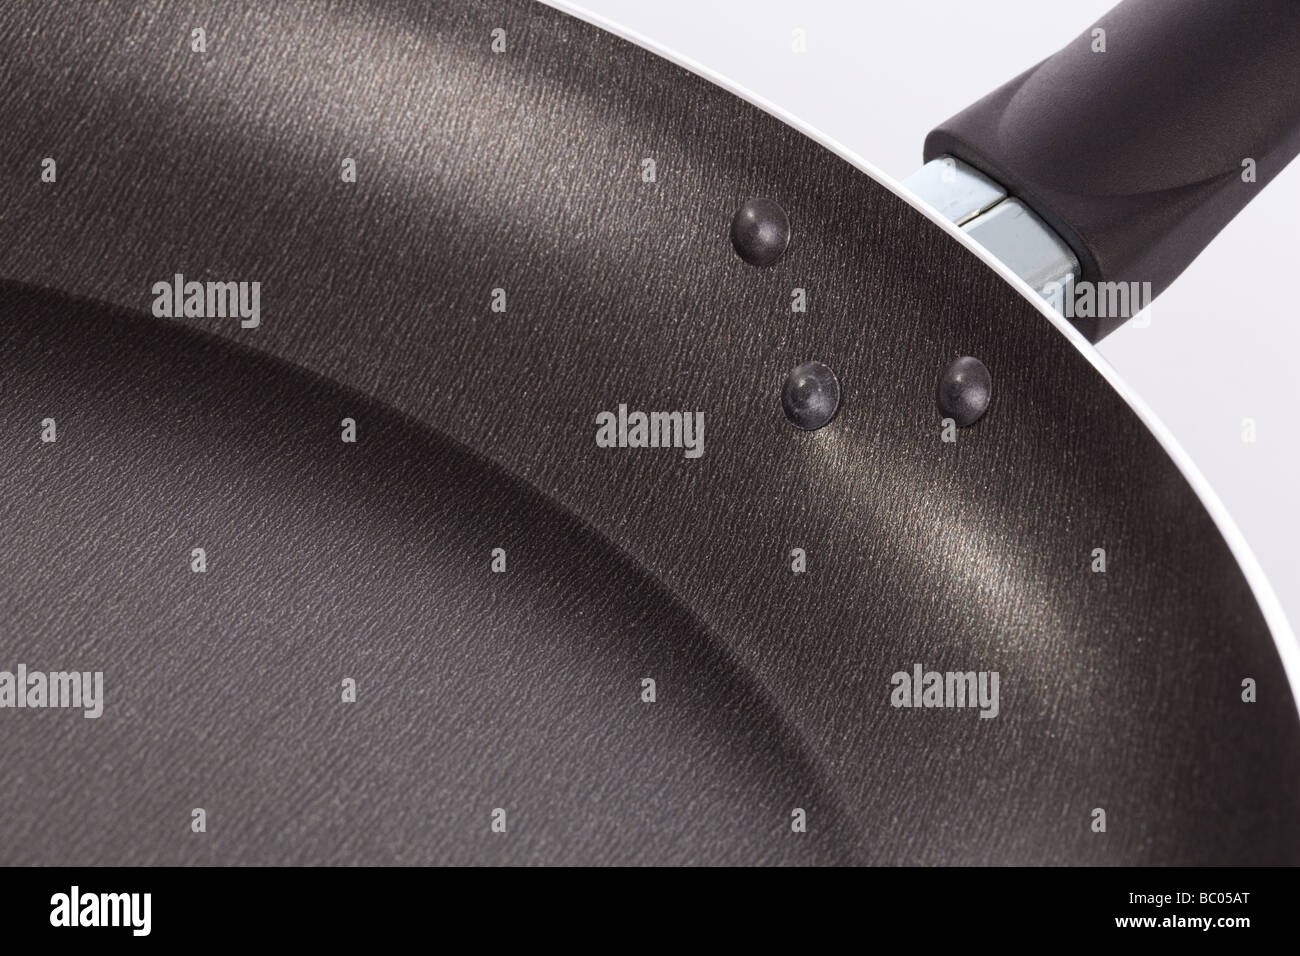 Detail of the Teflon surface in a frying pan - Stock Image